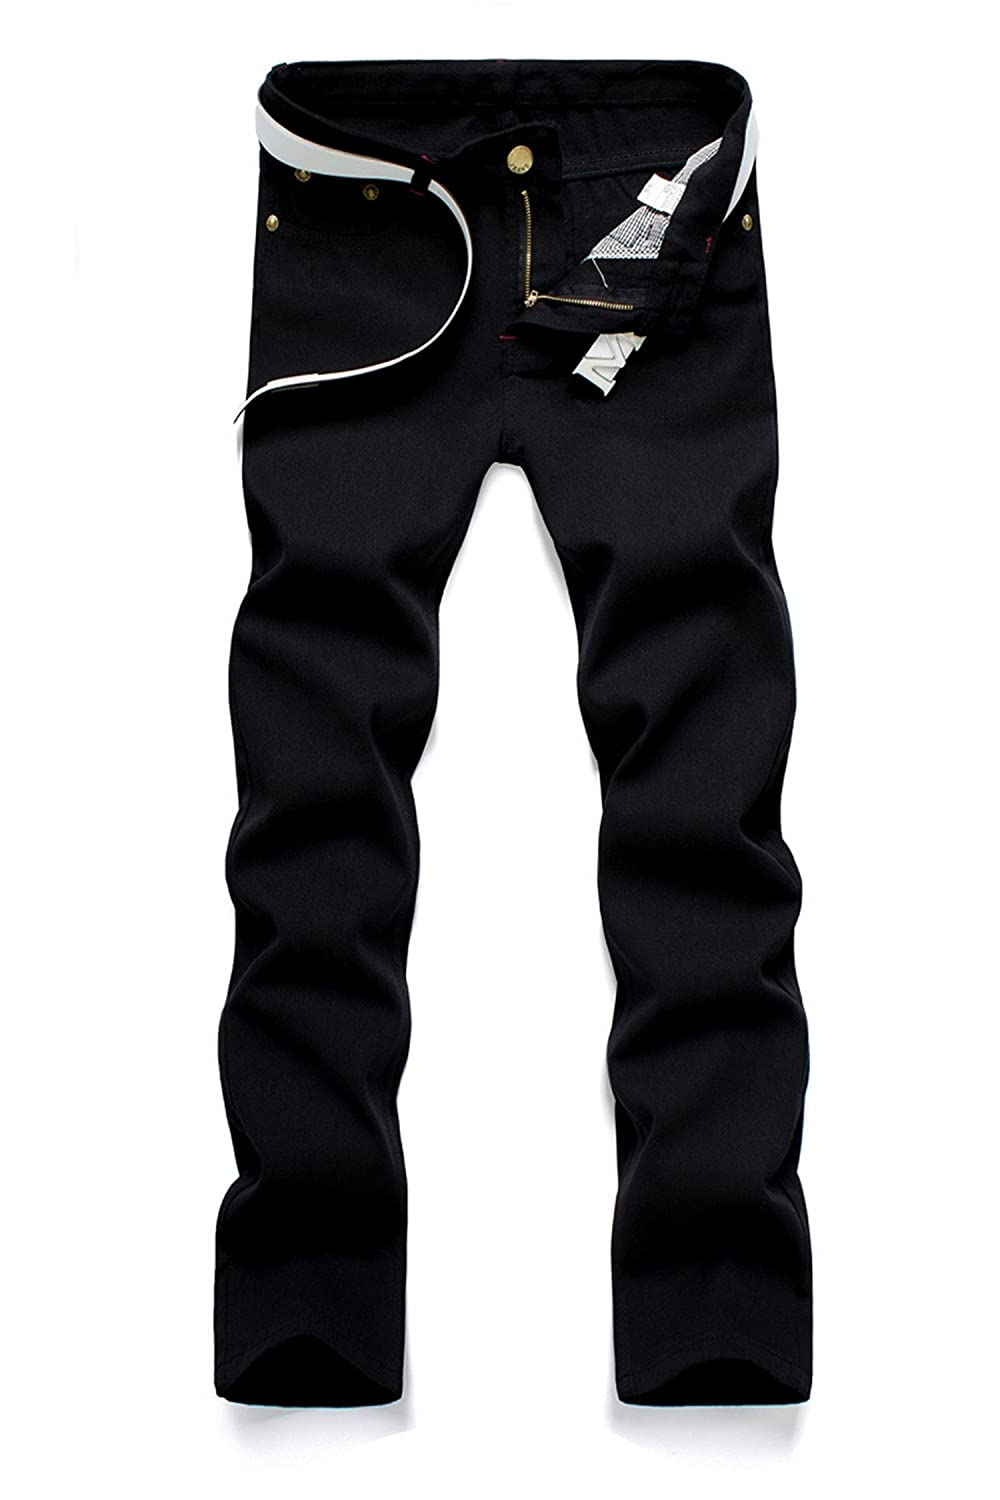 George Gouge New Classic Mens Straight Washed Business Casual Pants Slim Long Trousers Cotton Denim